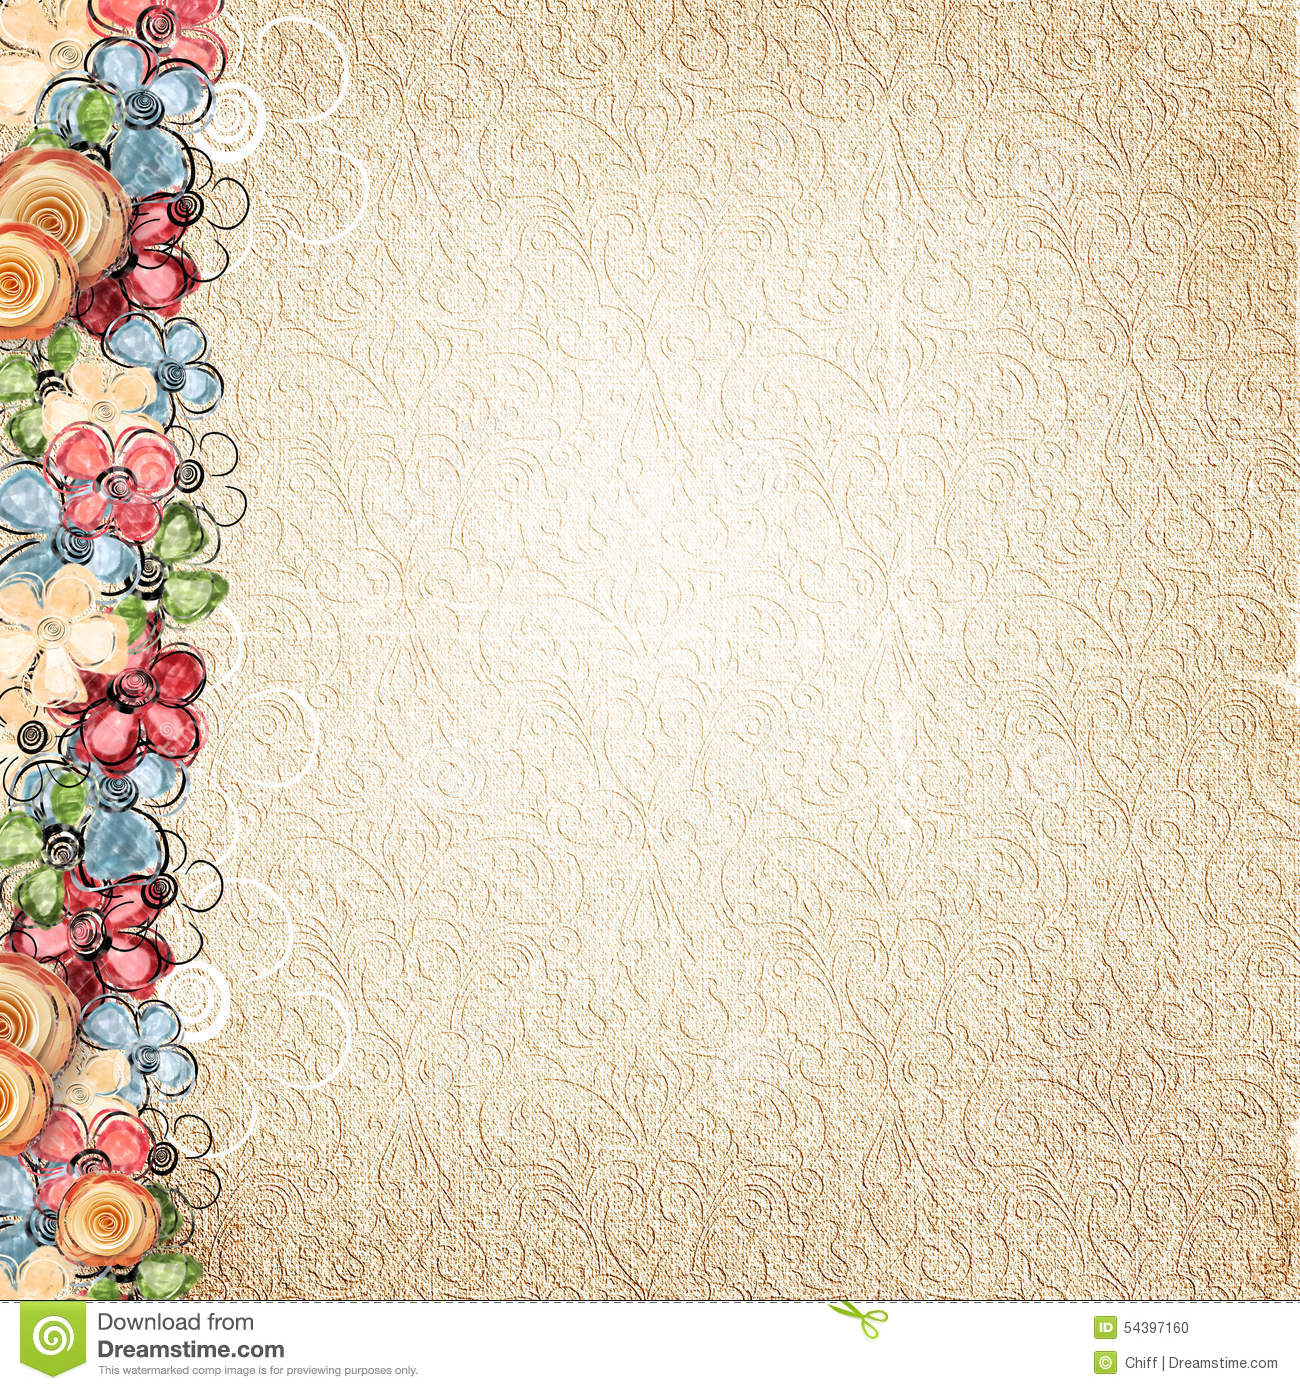 Vintage Flower Book Cover : Vintage background with flowers border stock photo image